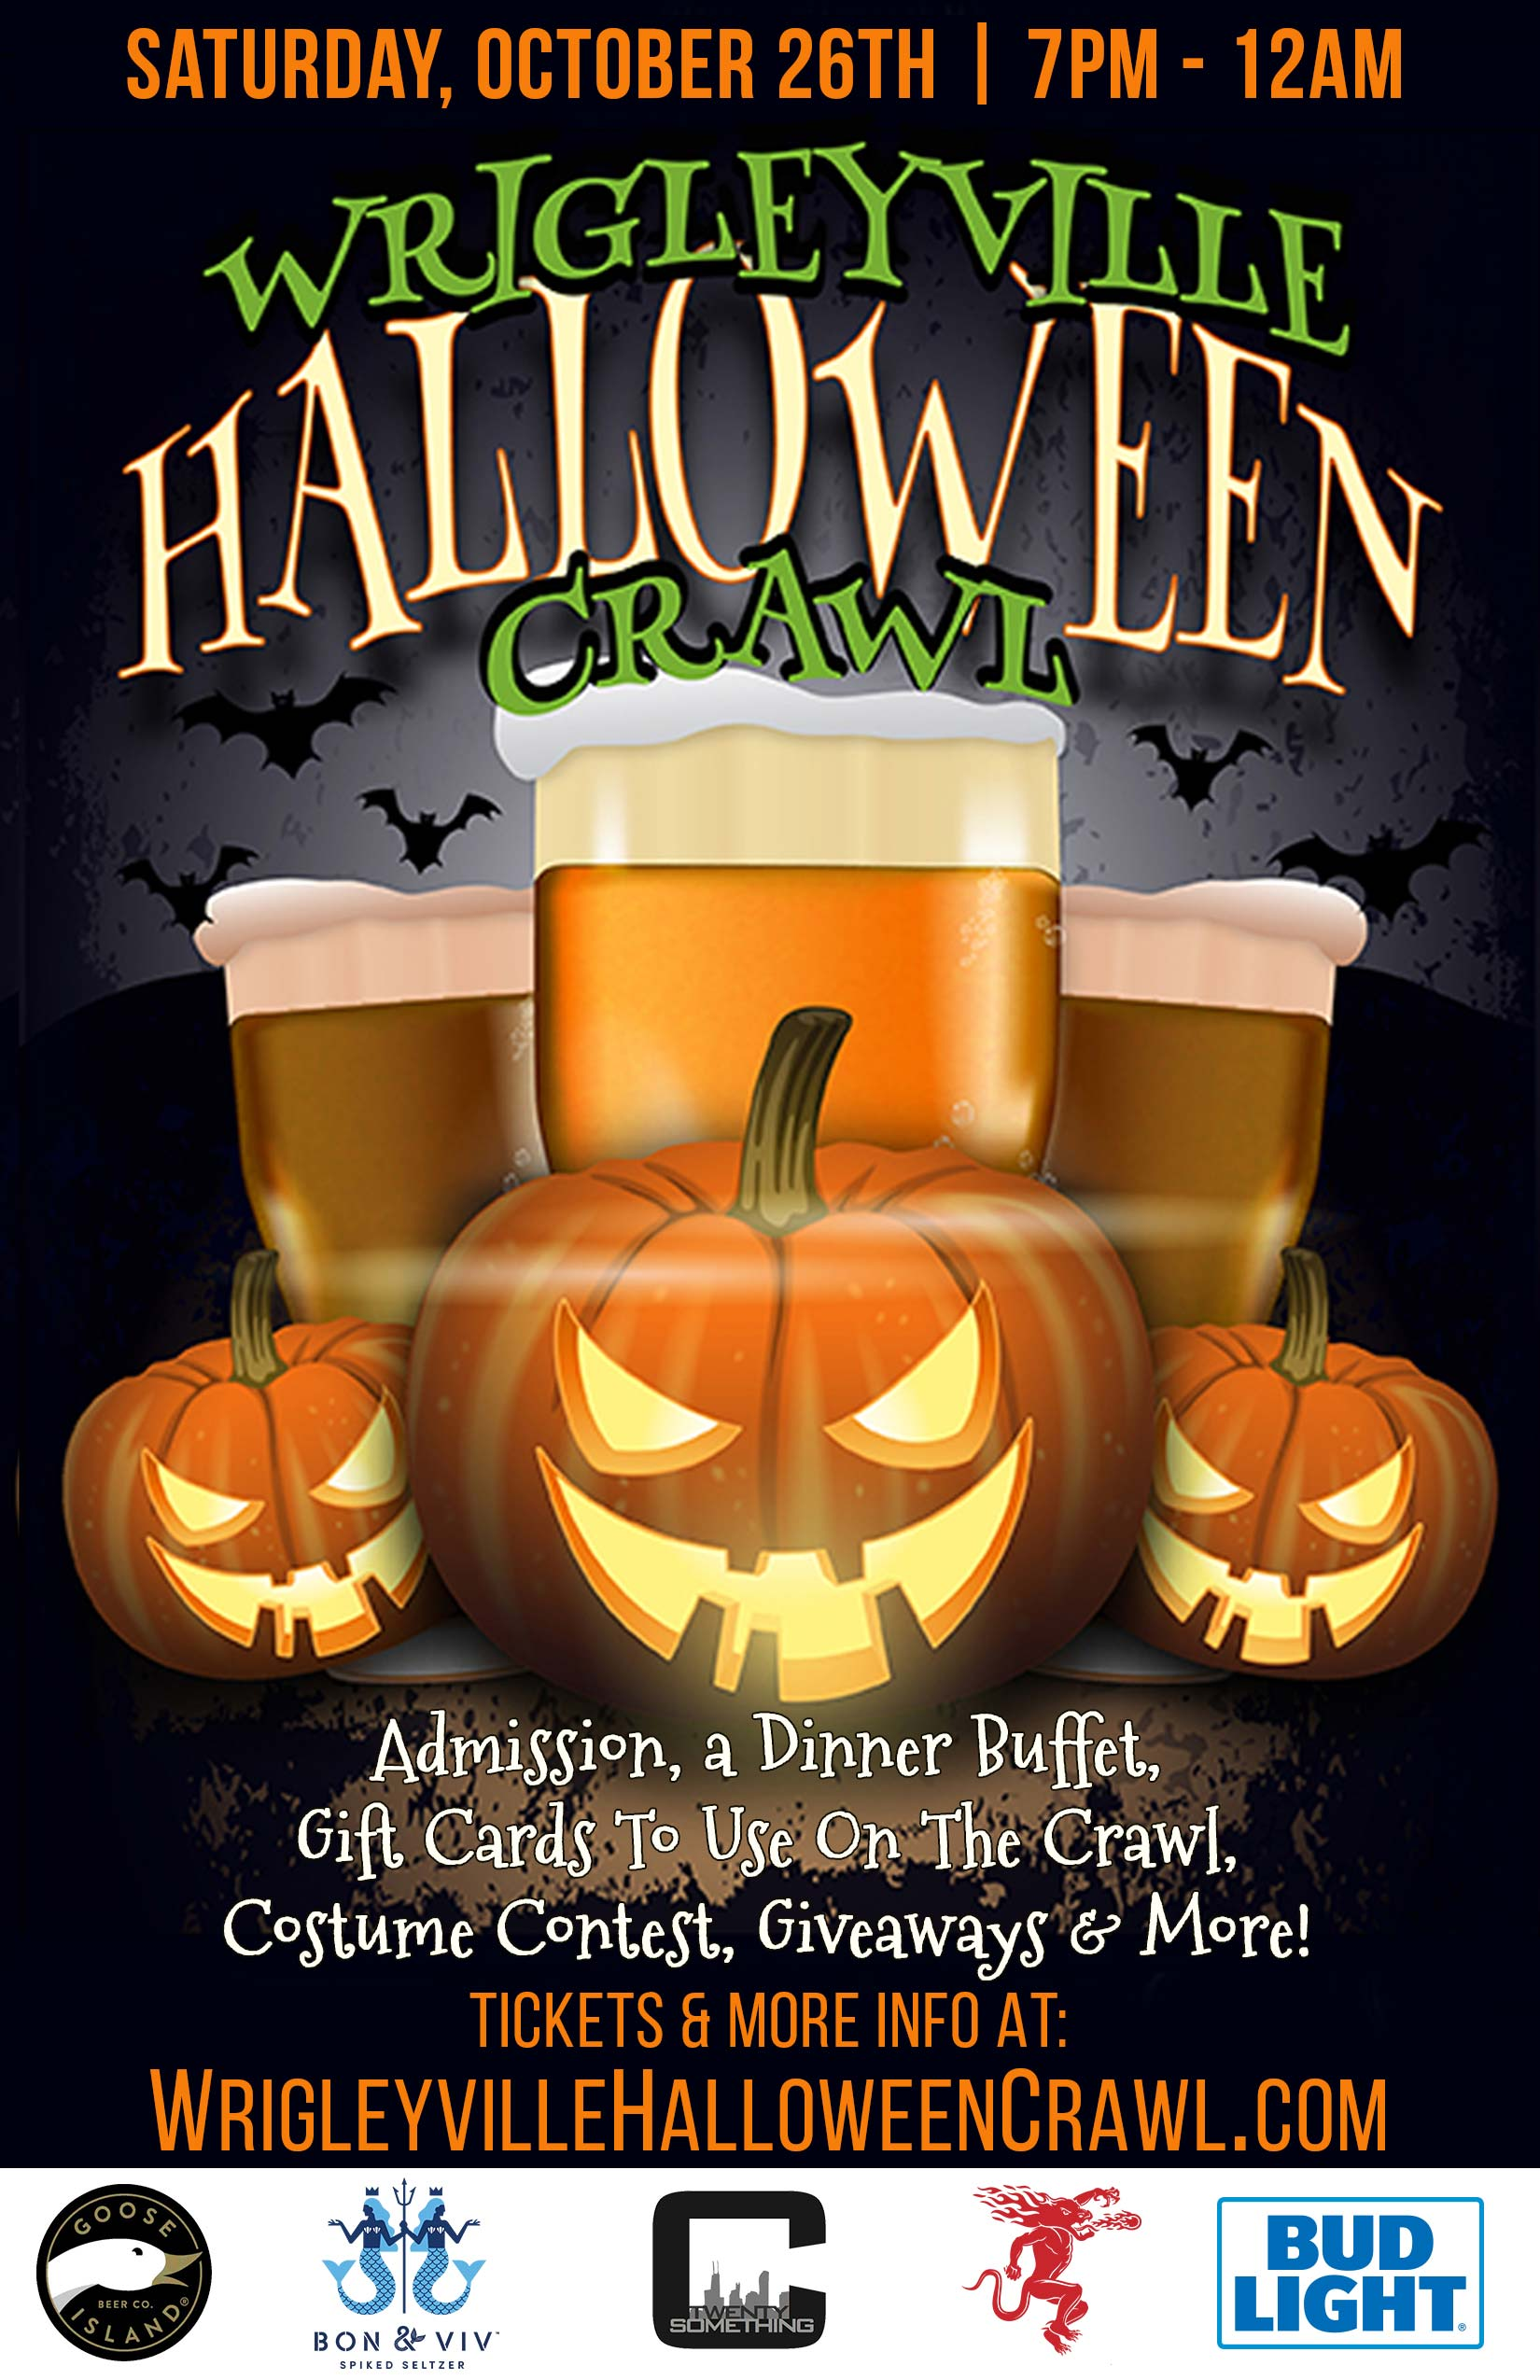 Wrigleyville Halloween Bar Crawl Party in Chicago - Tickets include Admission & a Free DInner Buffet, Gift Cards to Use on the Crawl, a Costume Contest, Giveaways & MORE!